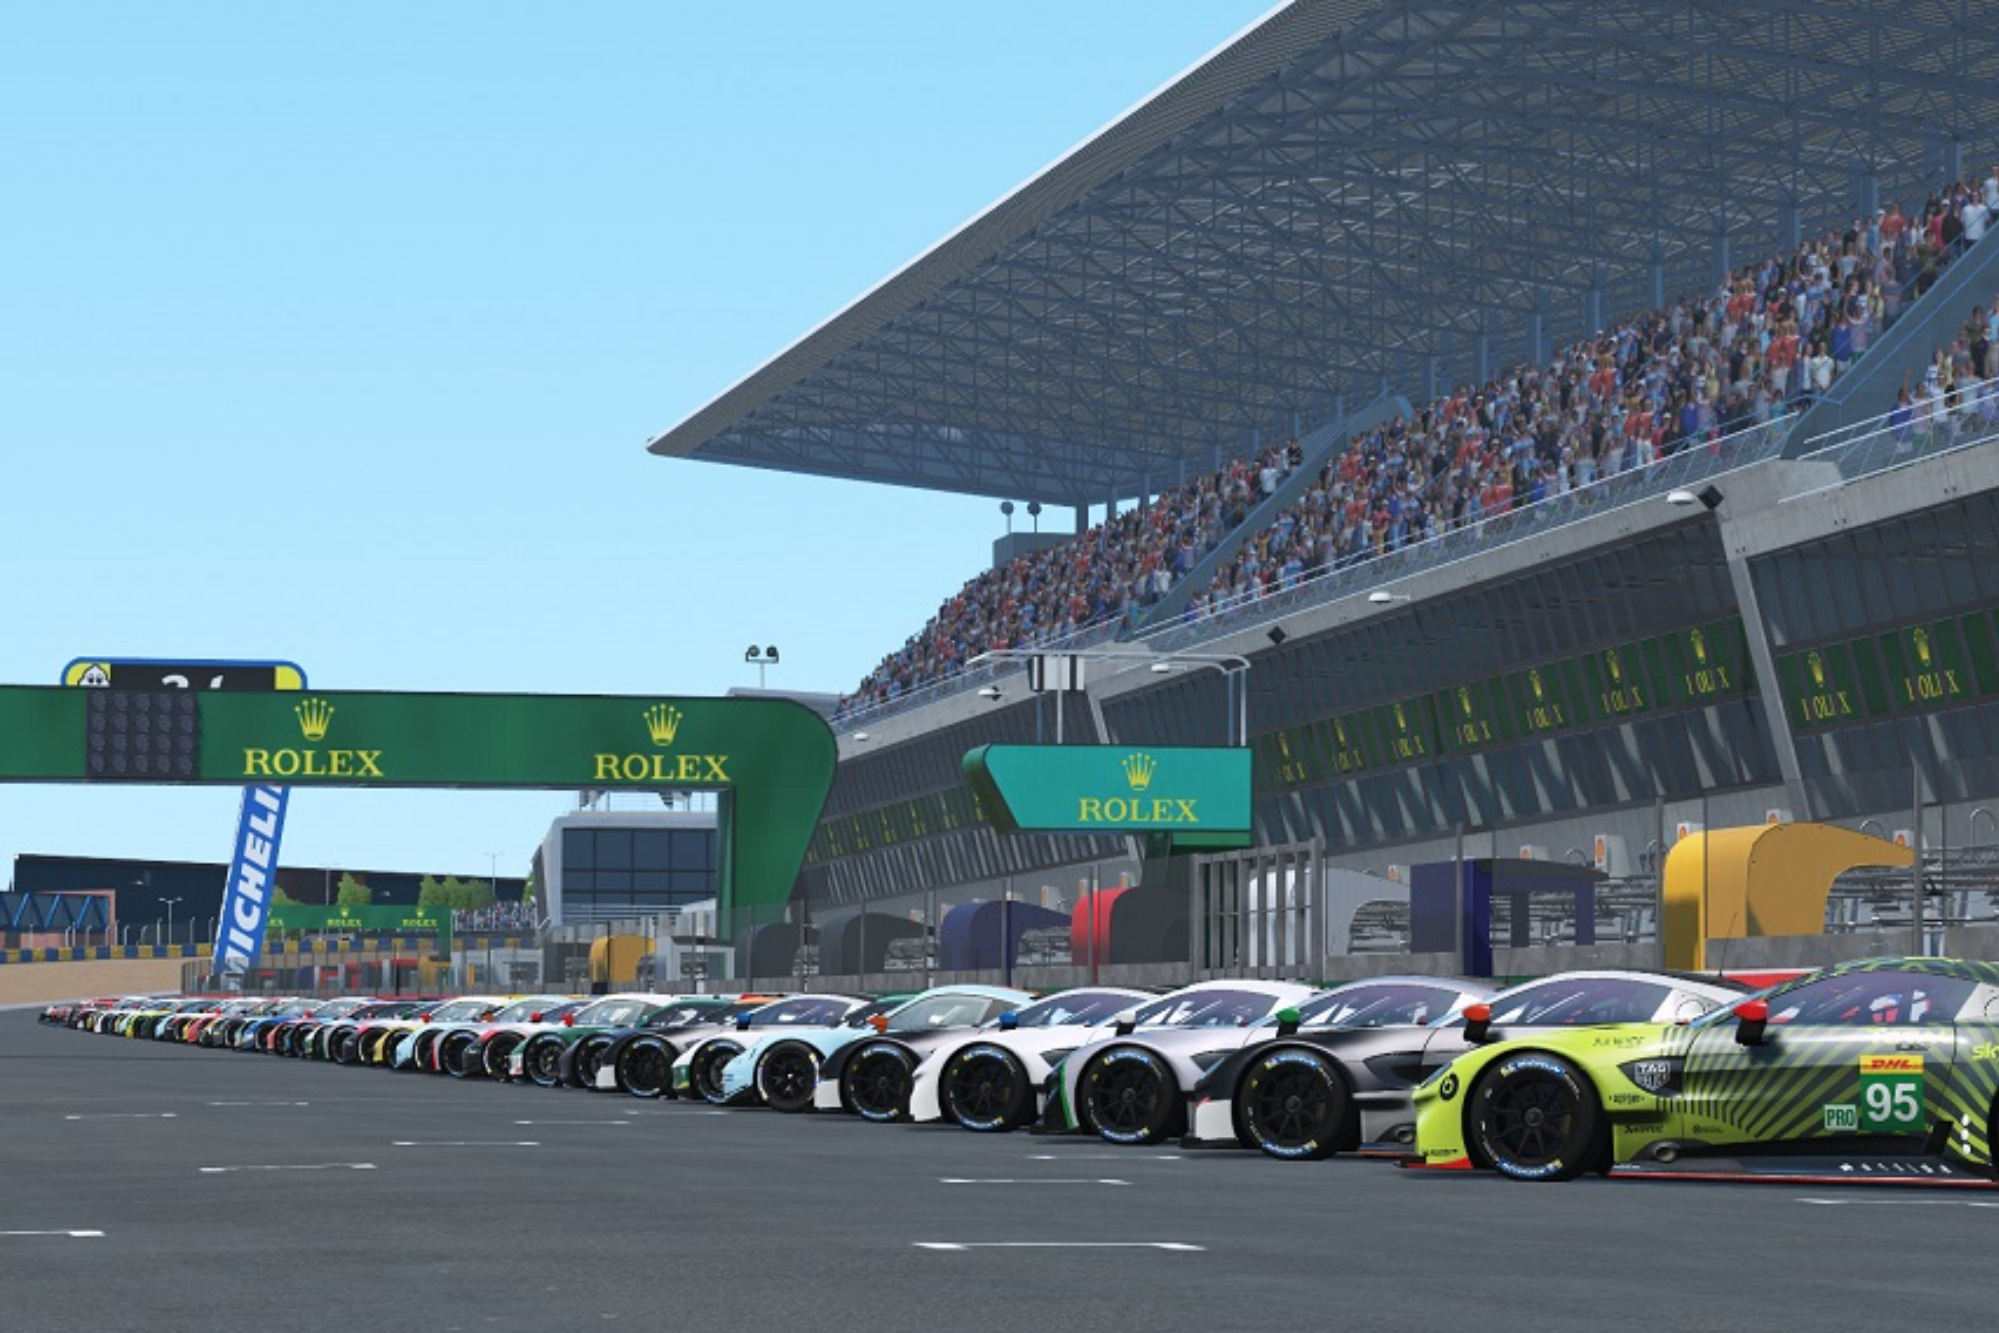 2020 Virtual Le Mans 24 Hours – Race preview